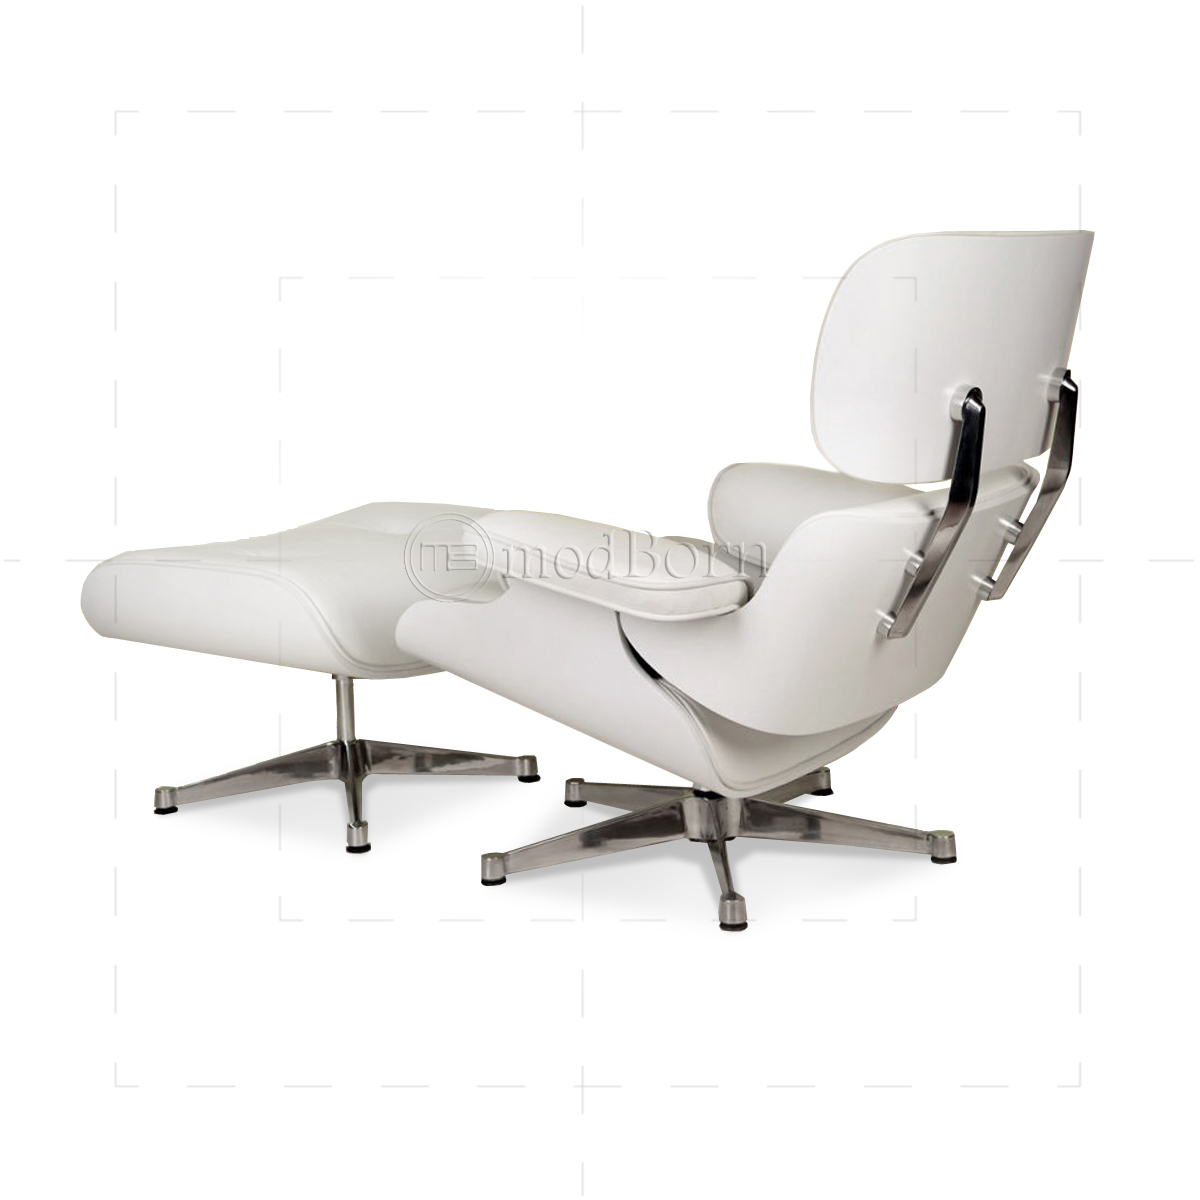 Enjoyable Eames Style Lounge Chair And Ottoman White Leather White Pdpeps Interior Chair Design Pdpepsorg